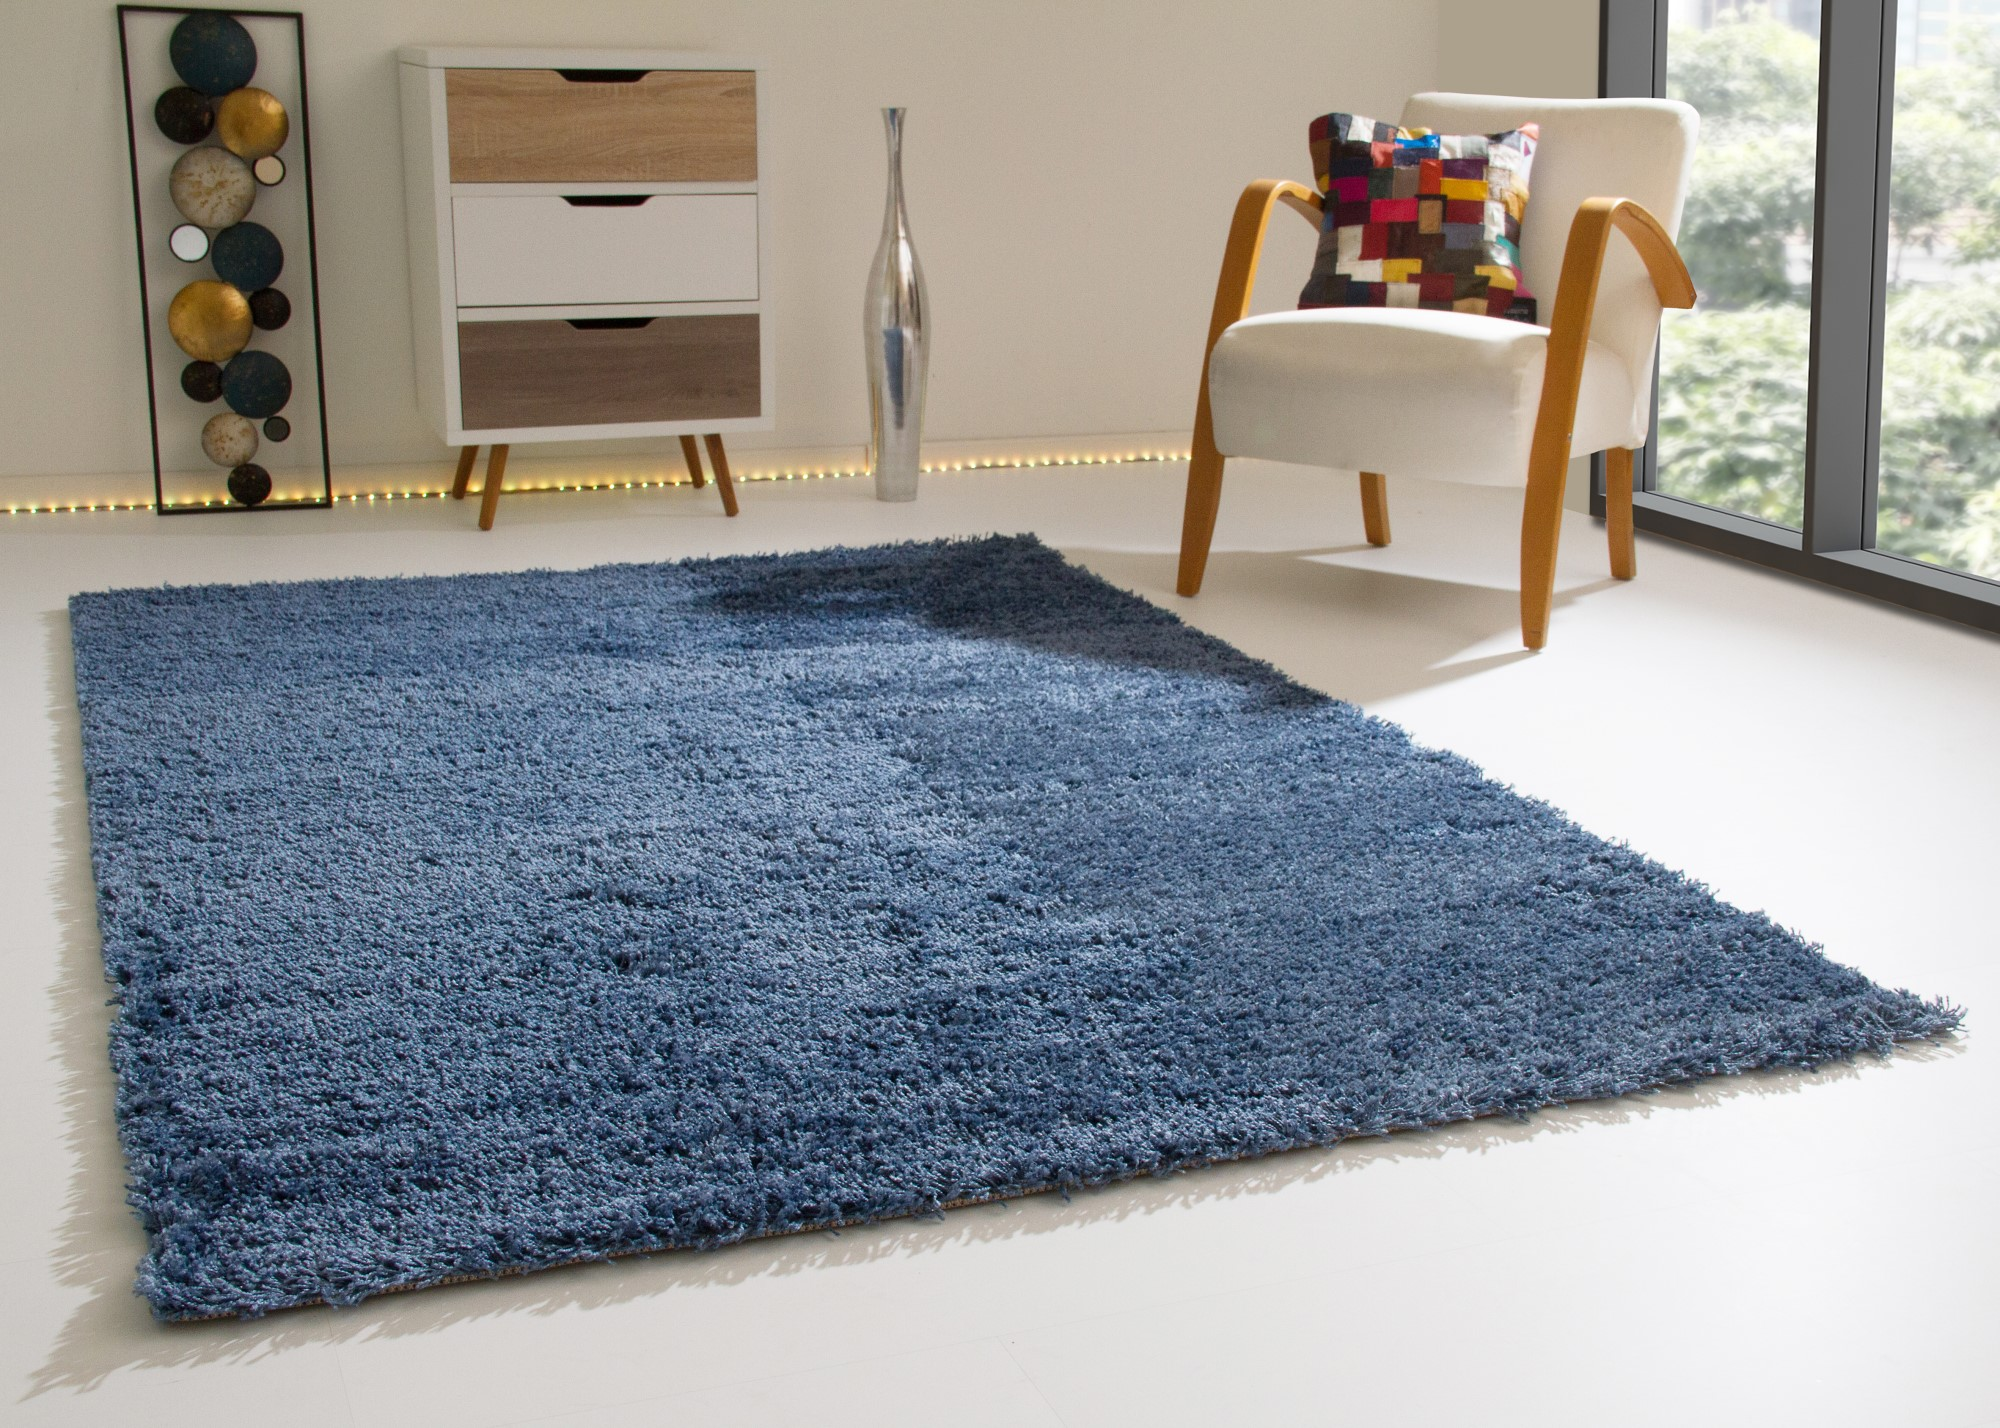 Shaggy Rug Happy Soft Pile Small Extra Large New Modern